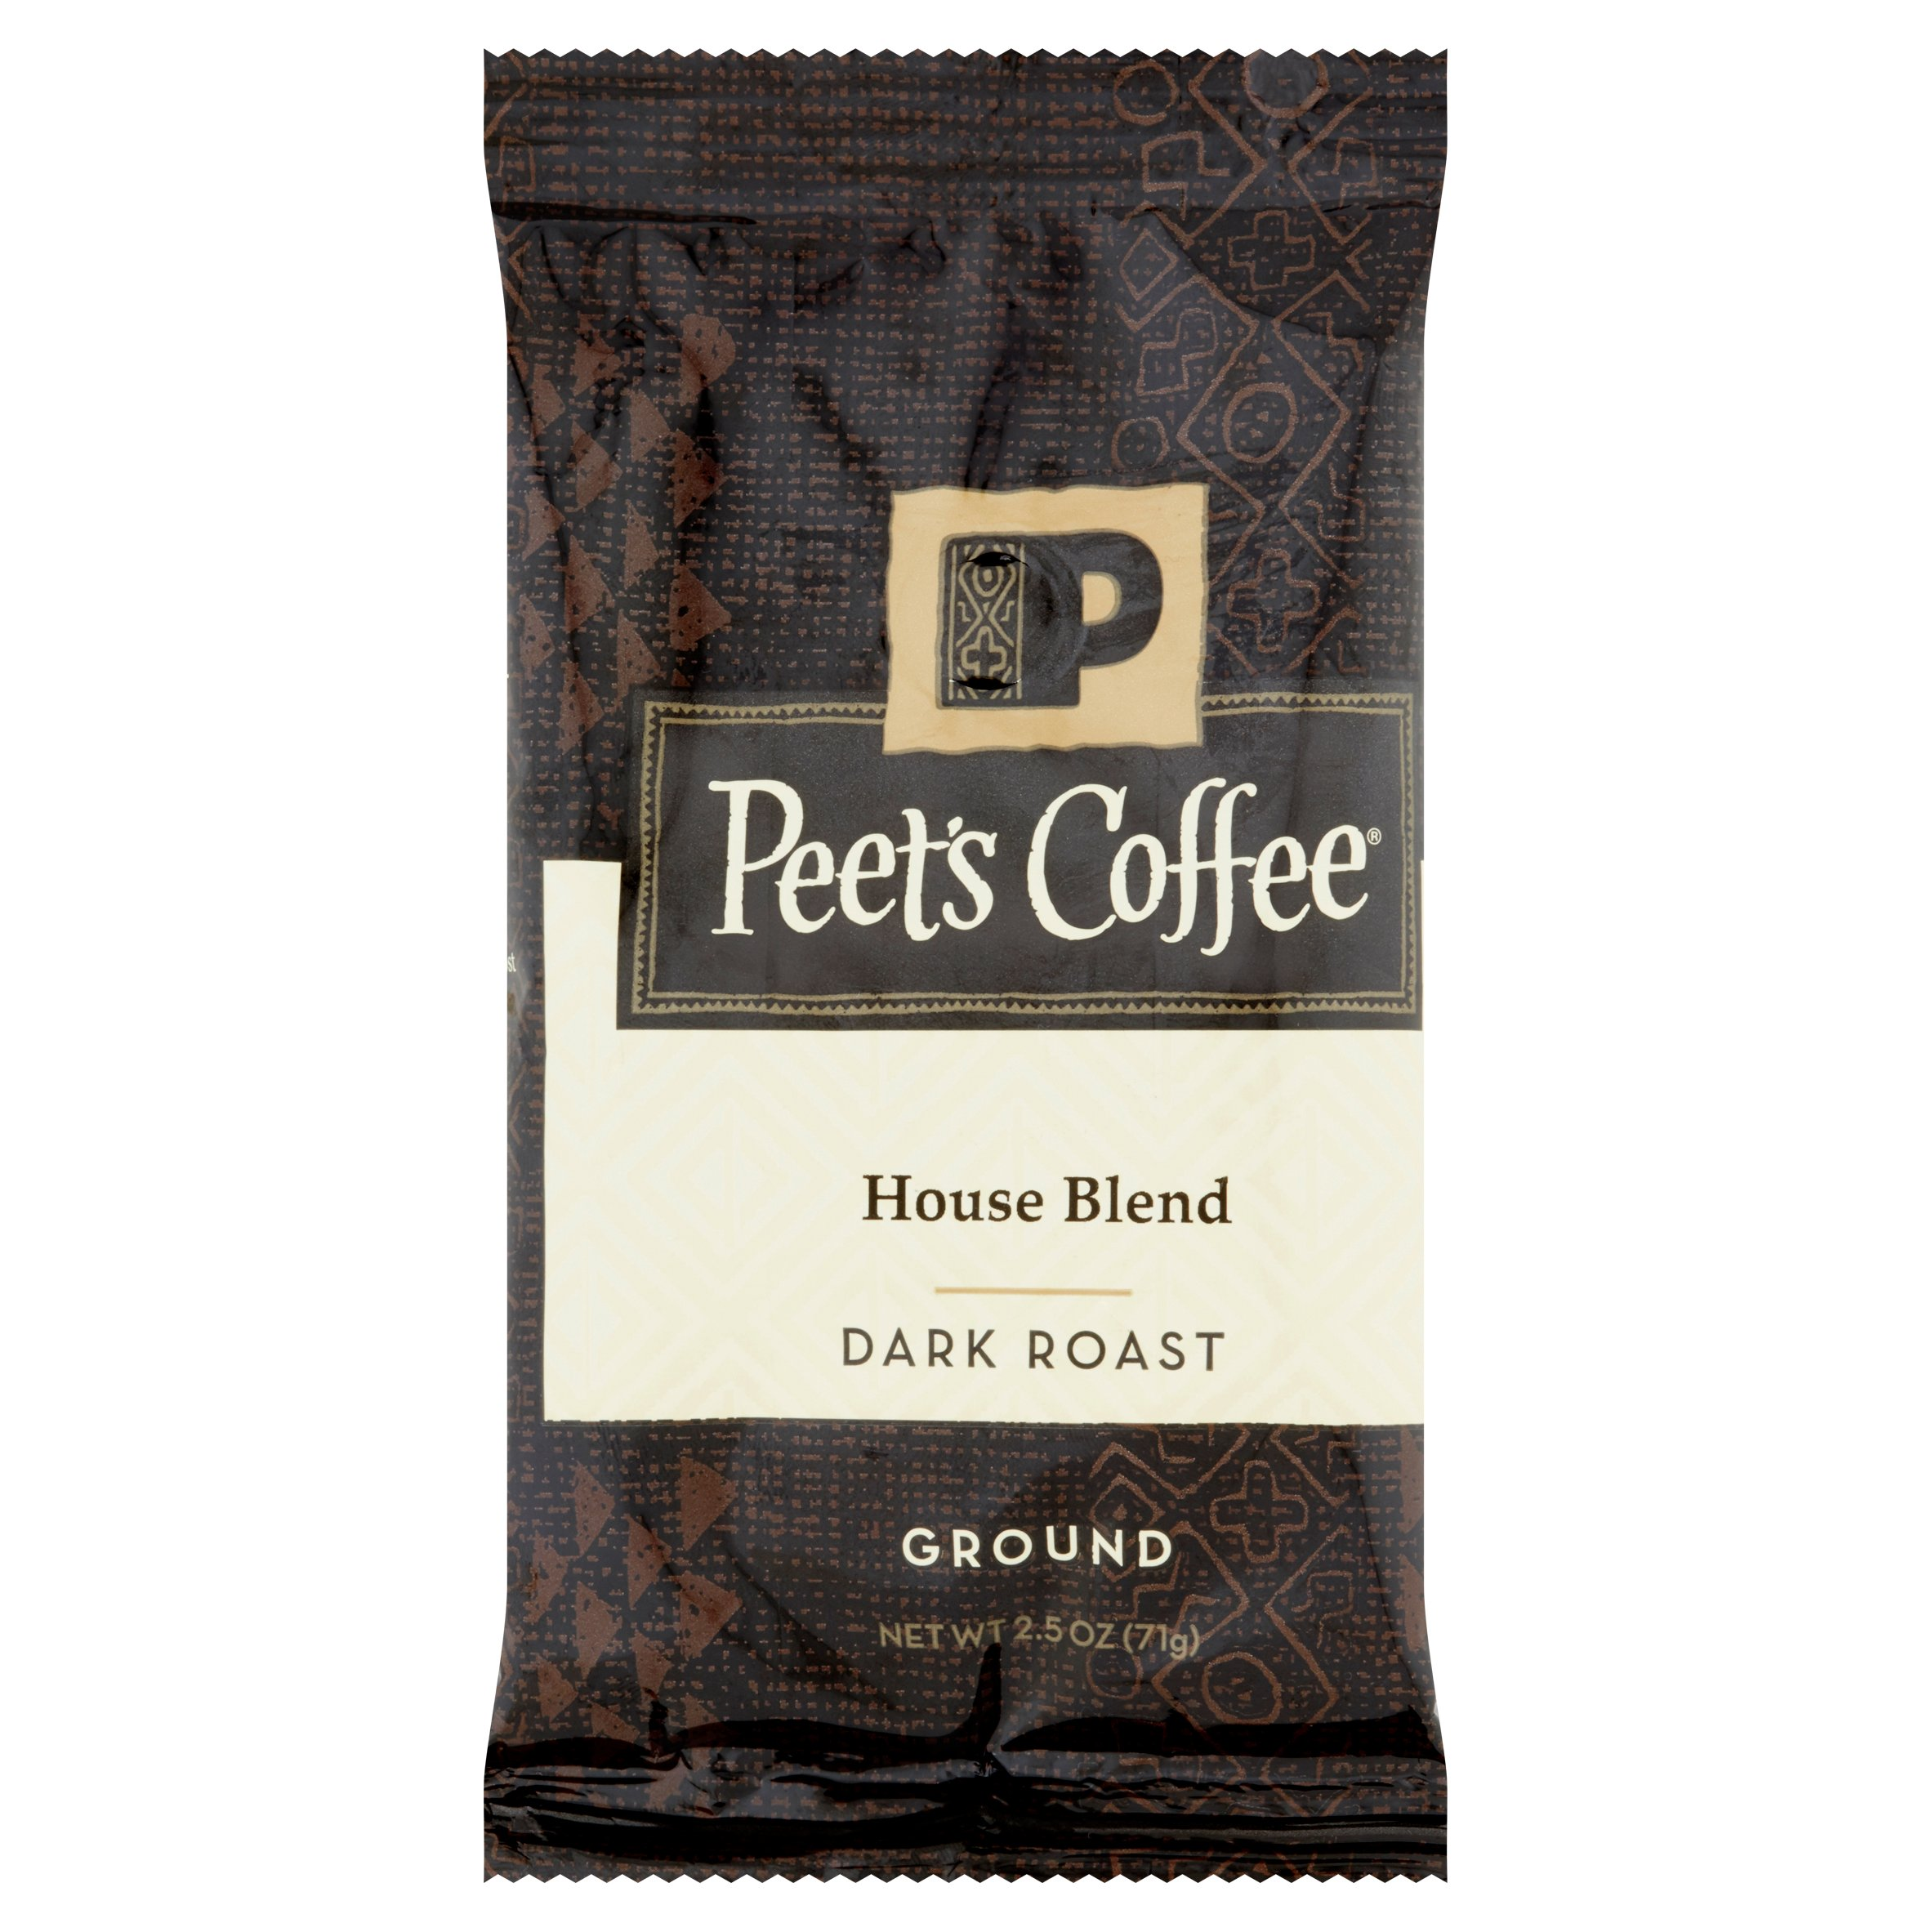 Peet's Coffee House Blend Dark Roast Ground Coffee Portion Packs, 18ct, 2.5 oz bags